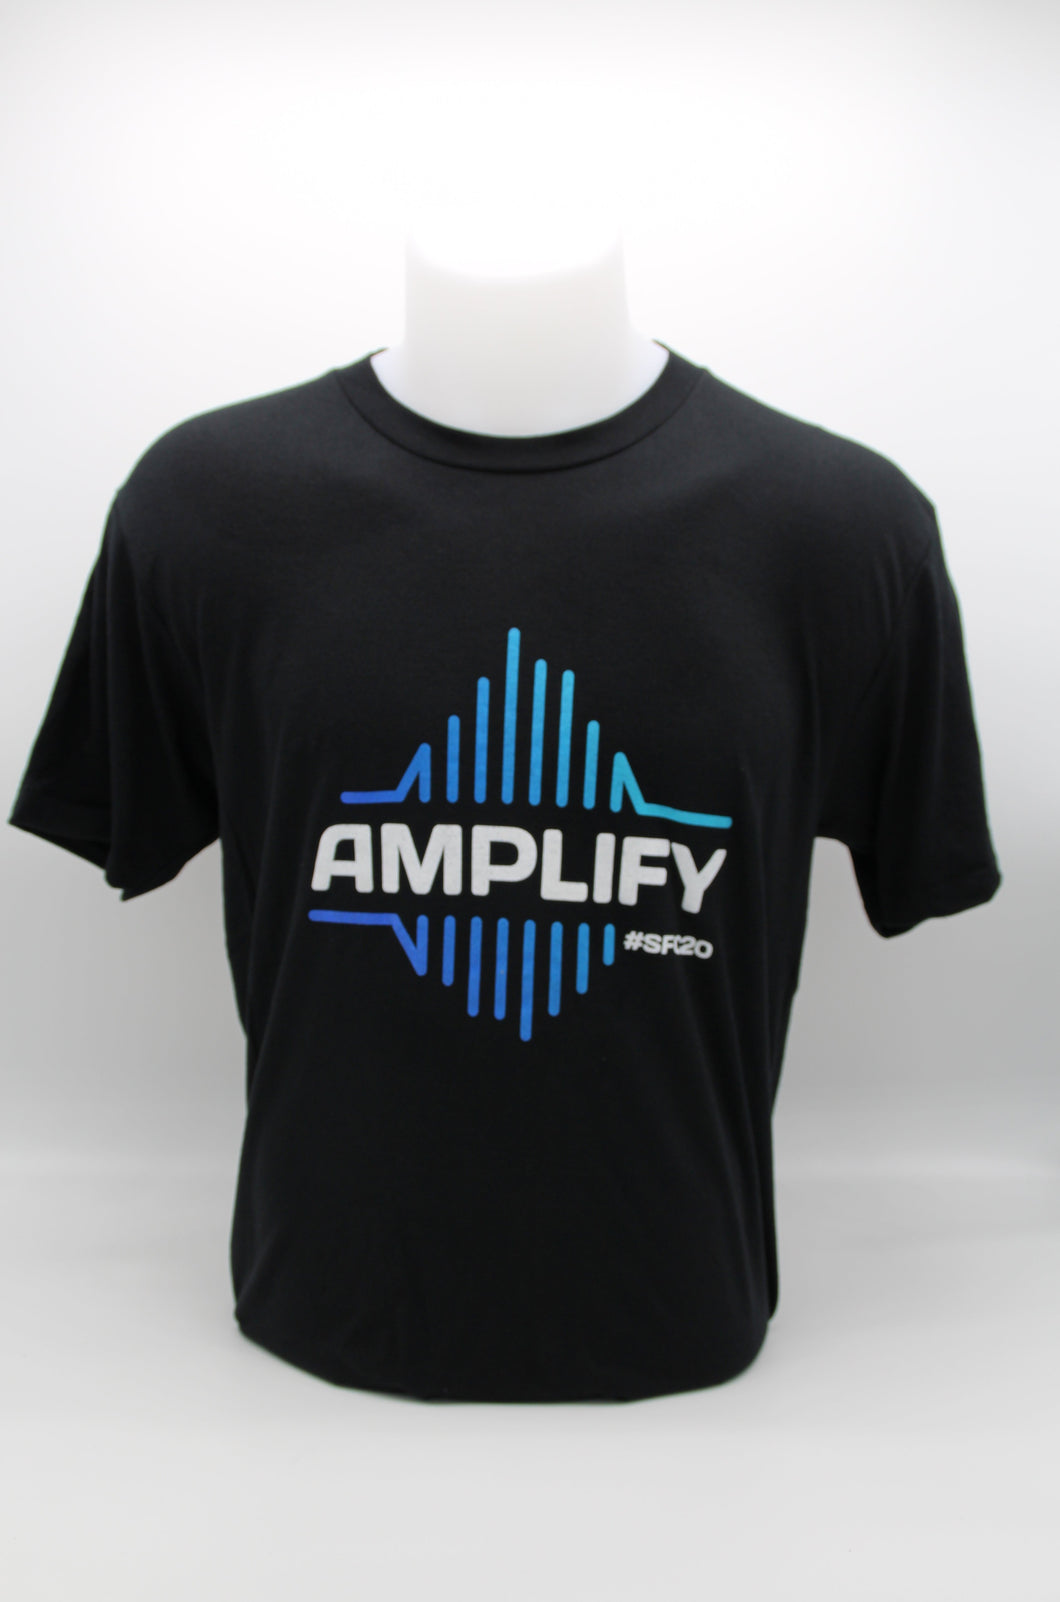 SFC20 Amplify T-shirt